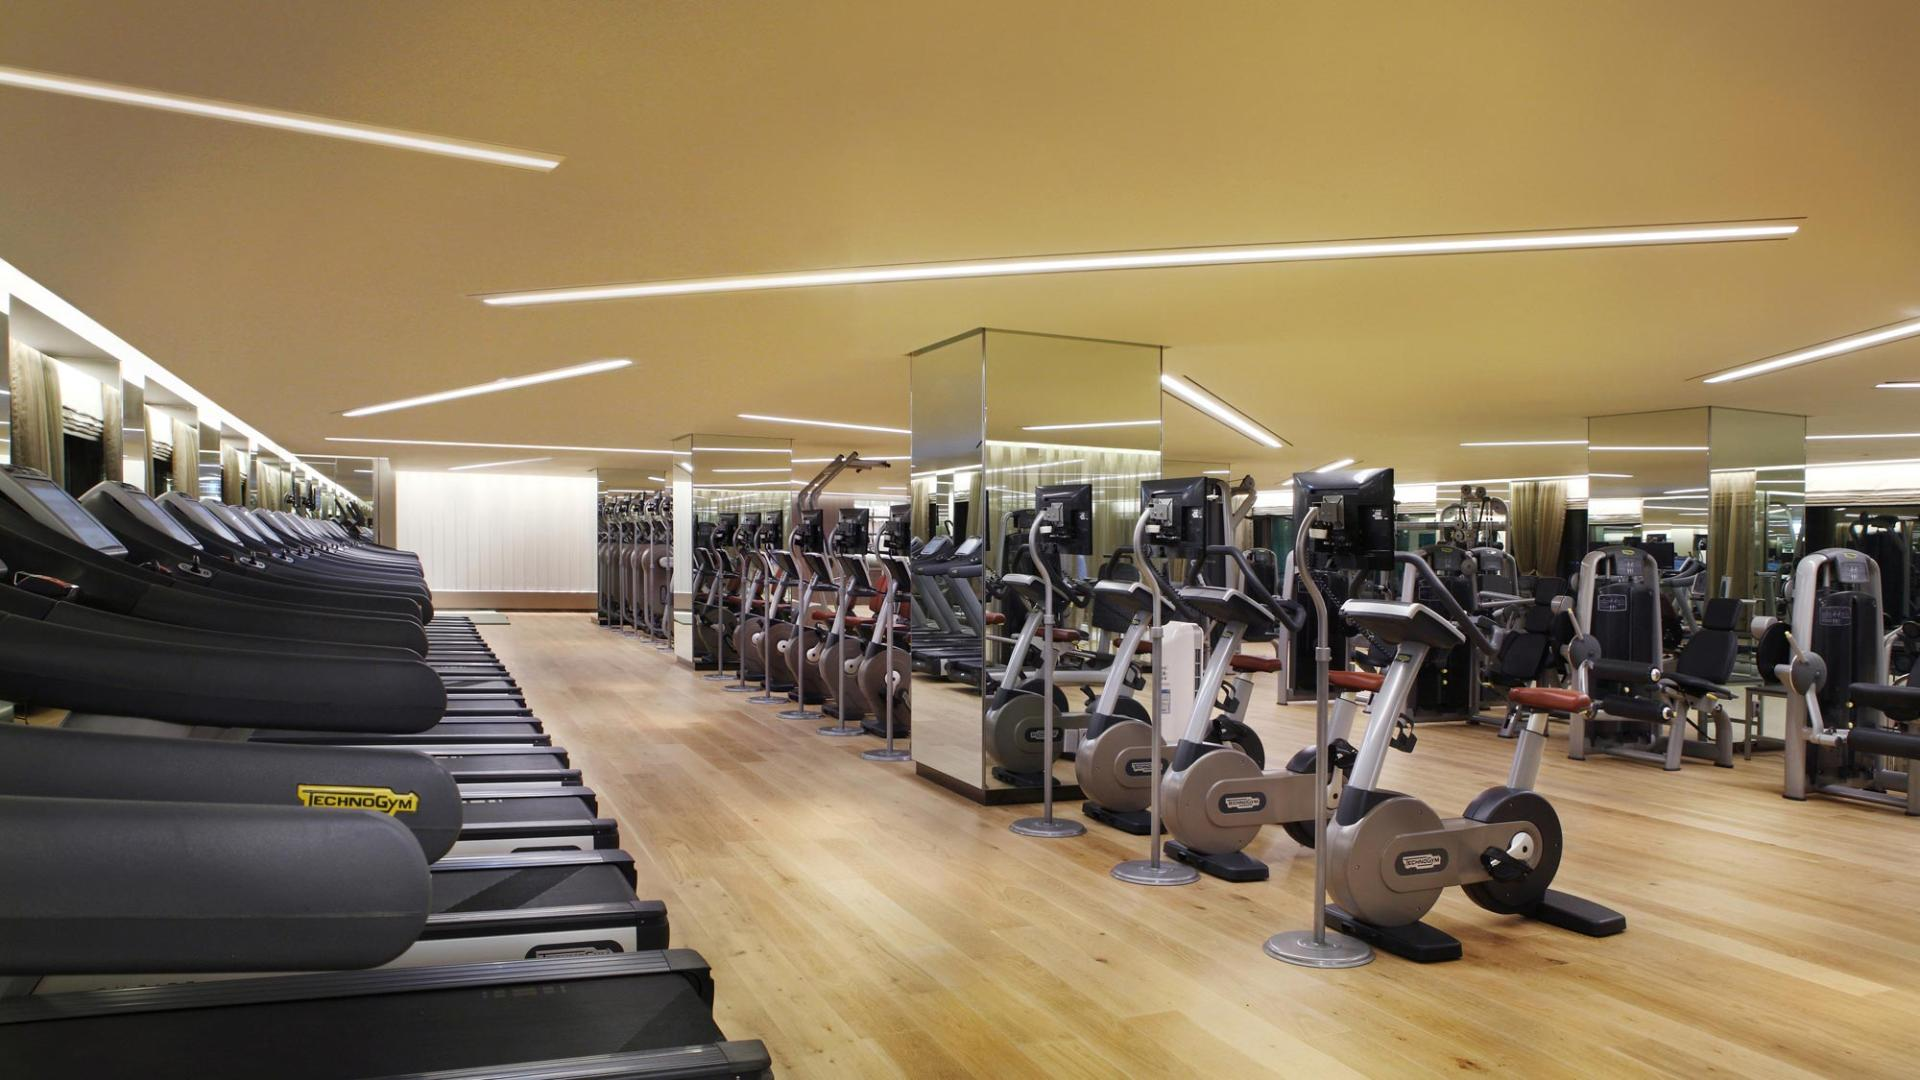 Lotte Hotel Seoul-Facilities-Spa&Fitness-Hotel Gym